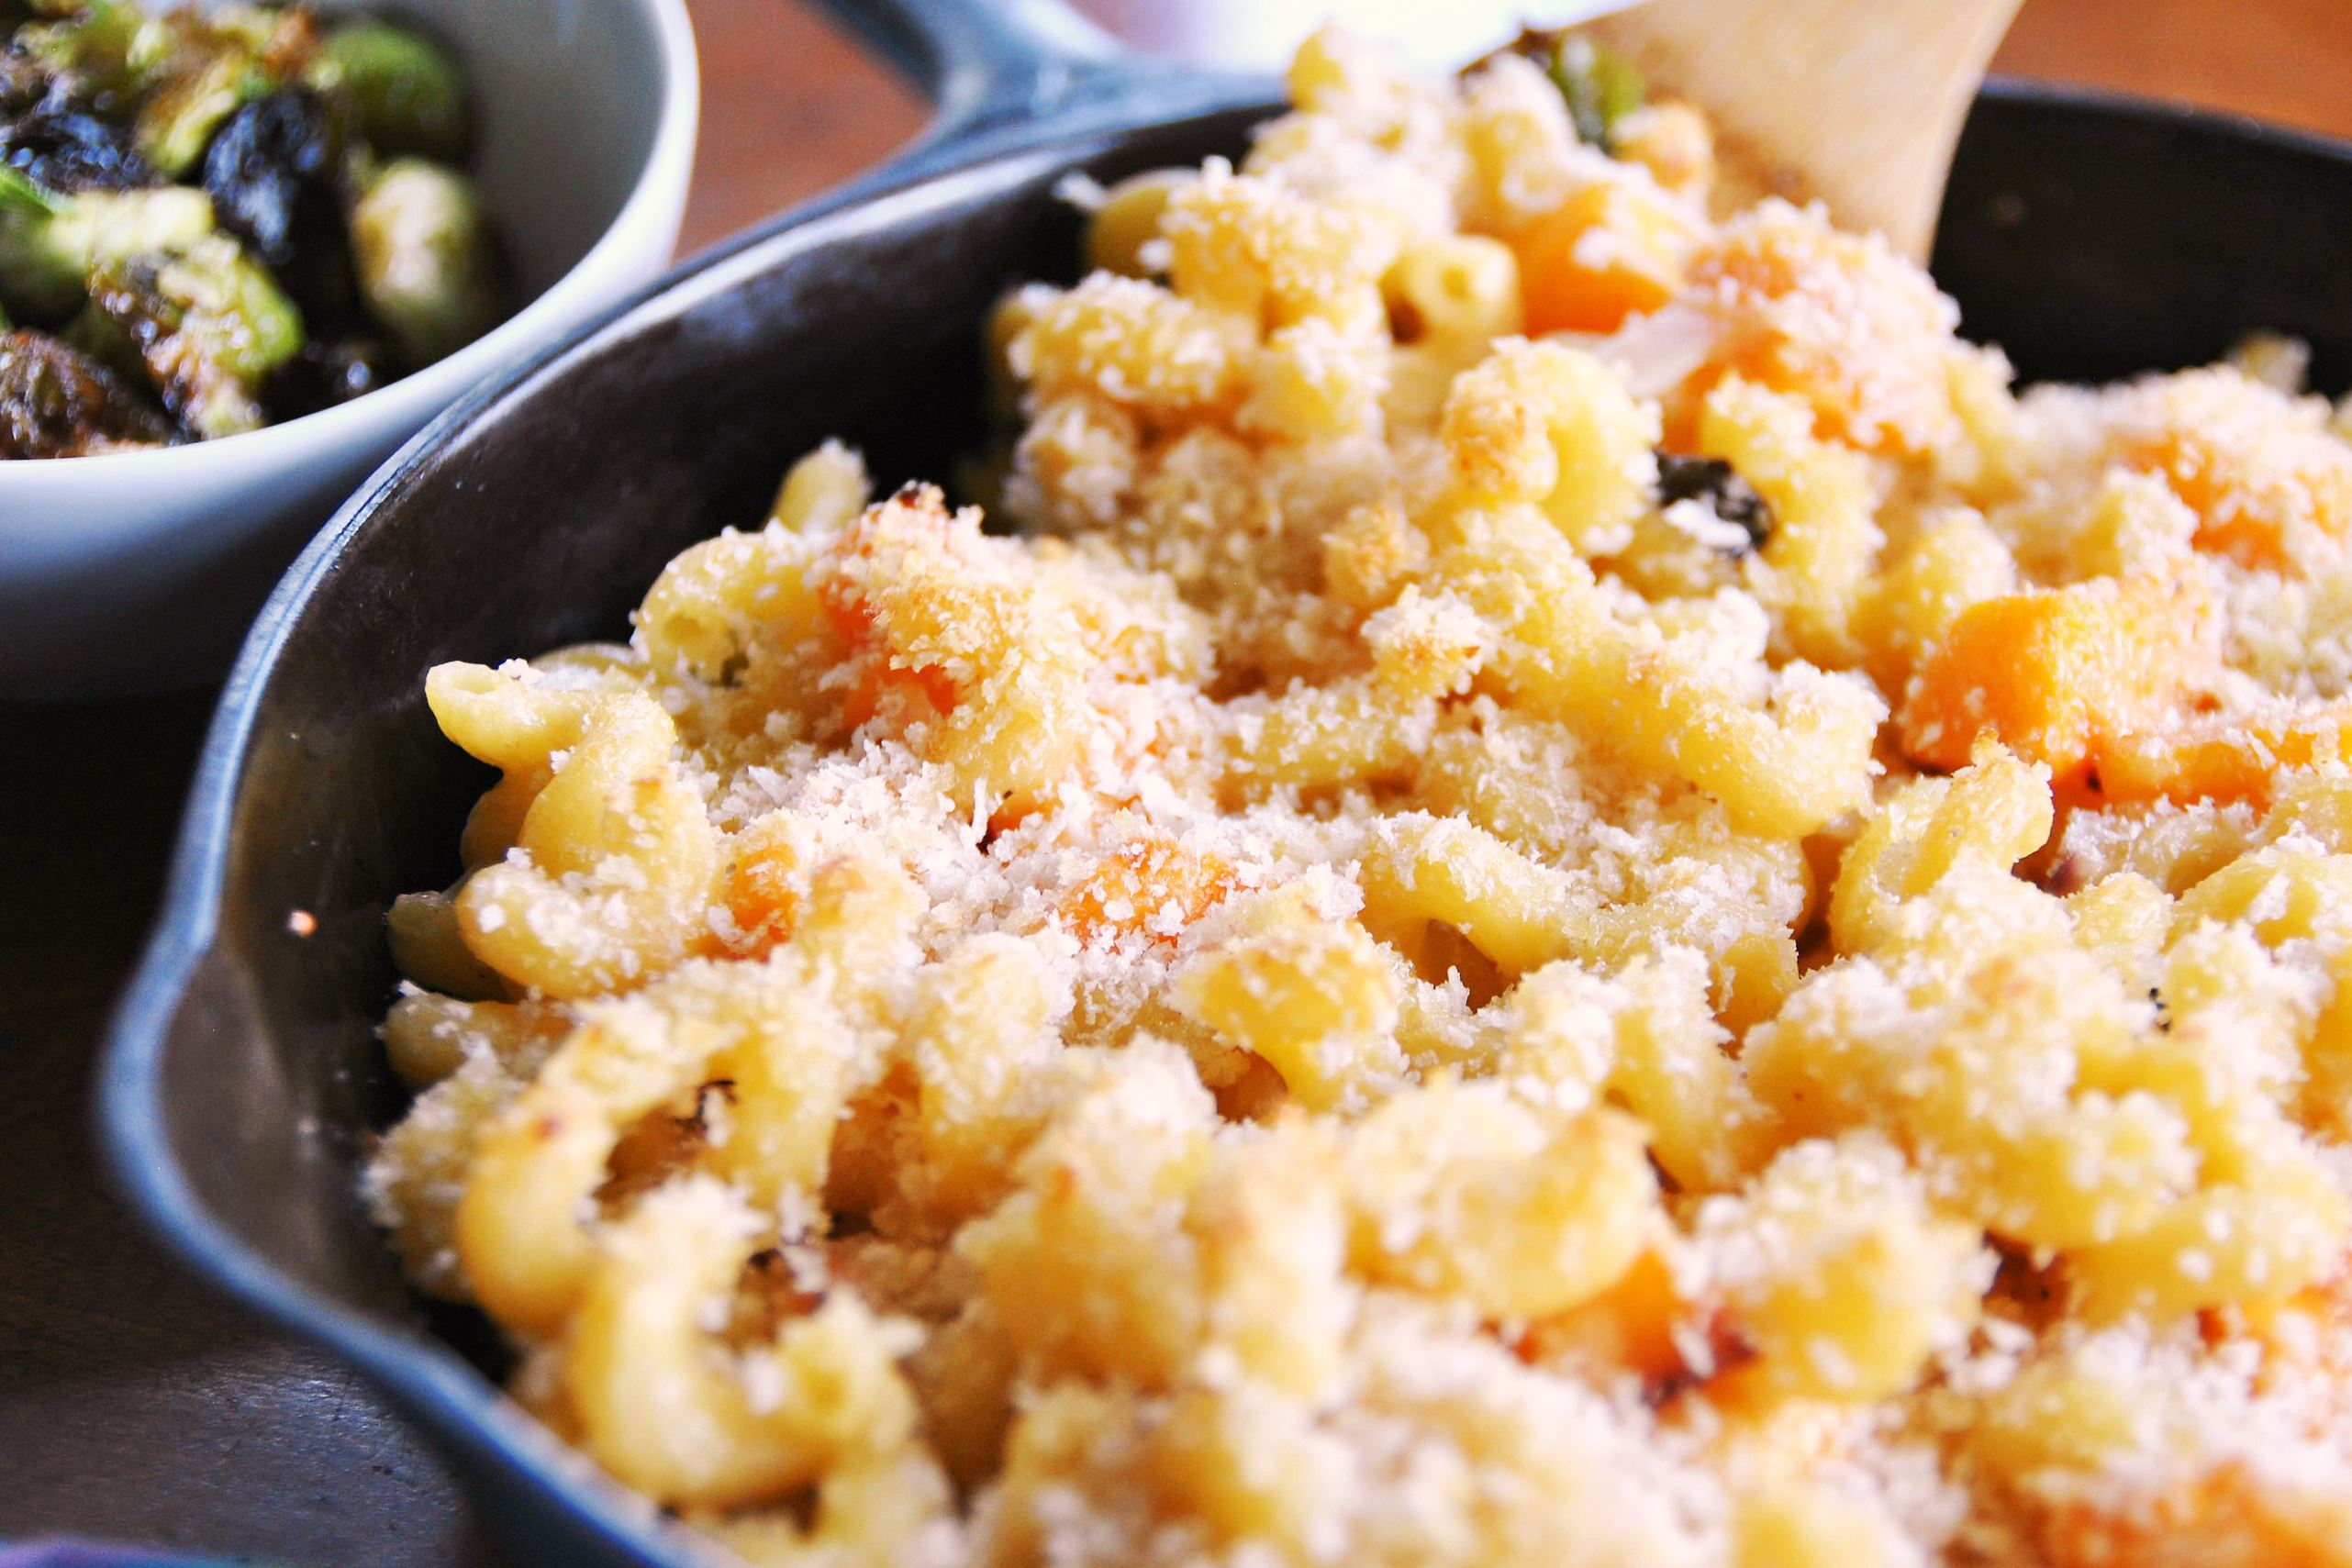 dinnerinabox-mac-cheese Home Chef's Mac 'n Cheese.